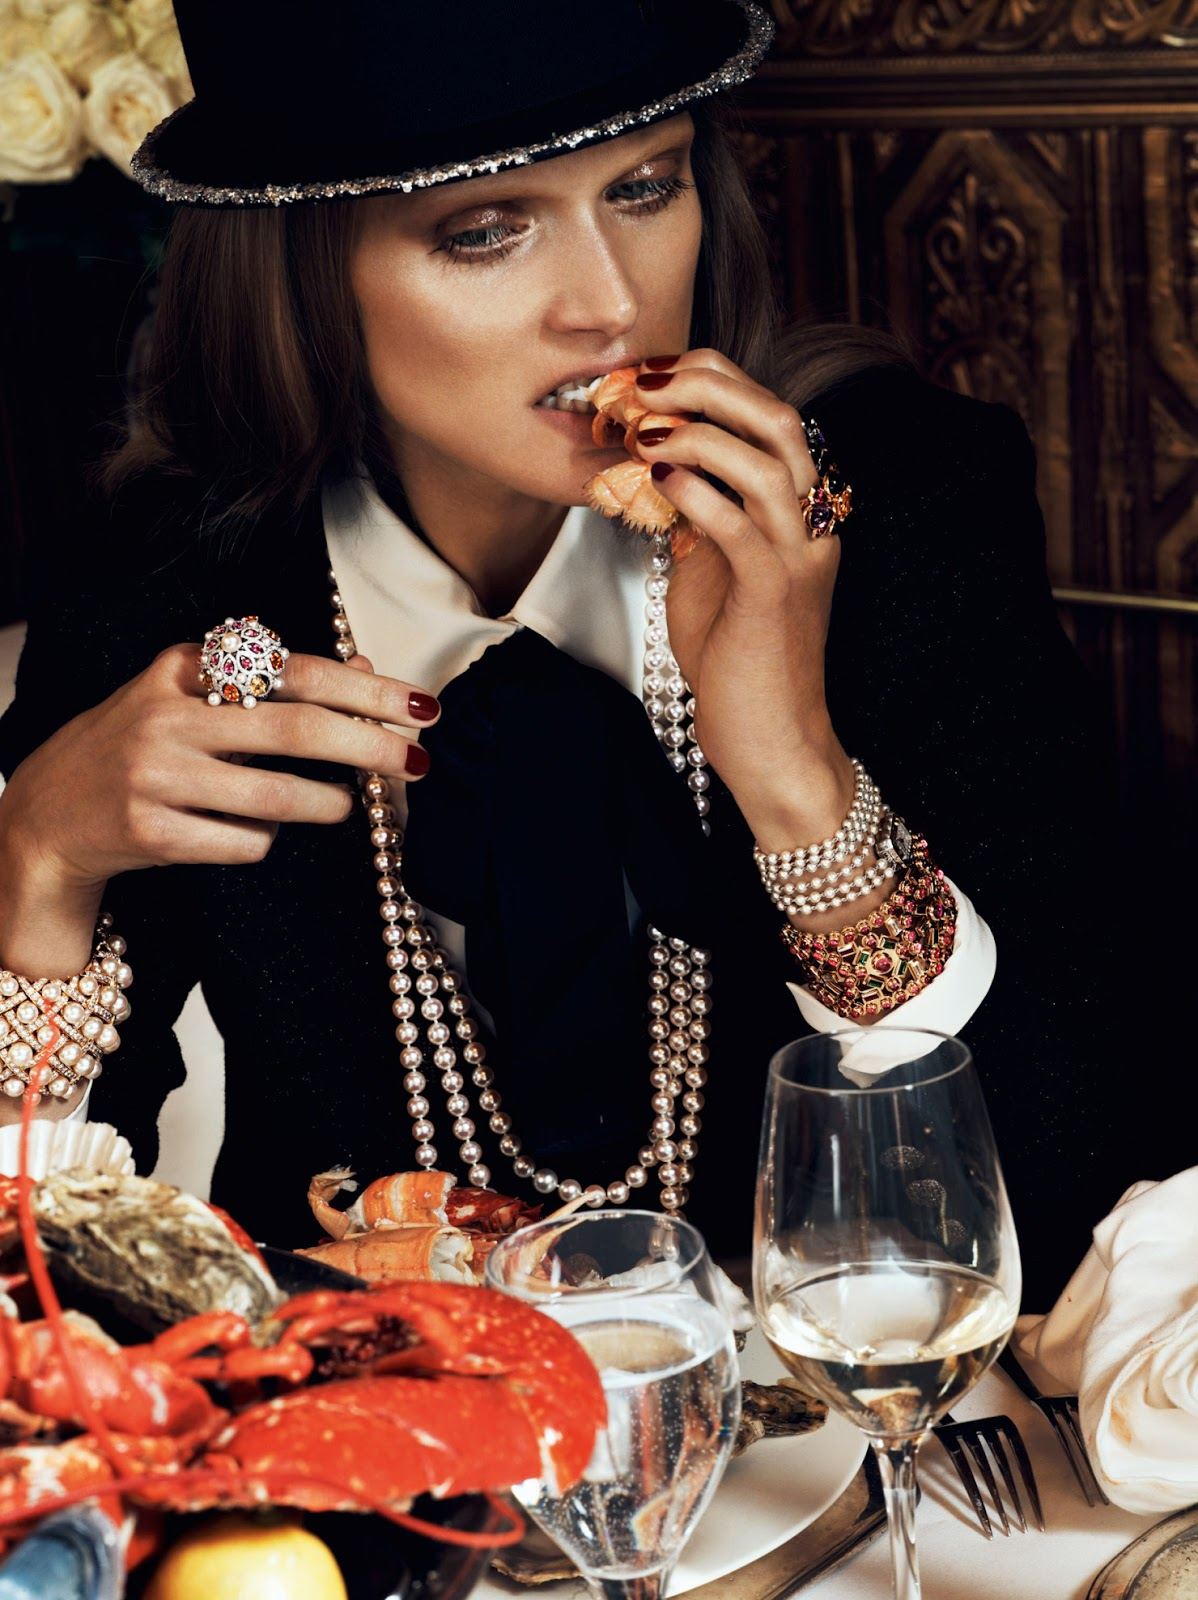 French diet secrets explained / Malgosia Bela in Chic Ultime / Vogue Paris August 2012 (photography: Lachlan Bailey, styling: Geraldine Saglio) via www.fashionedbylove.co.uk